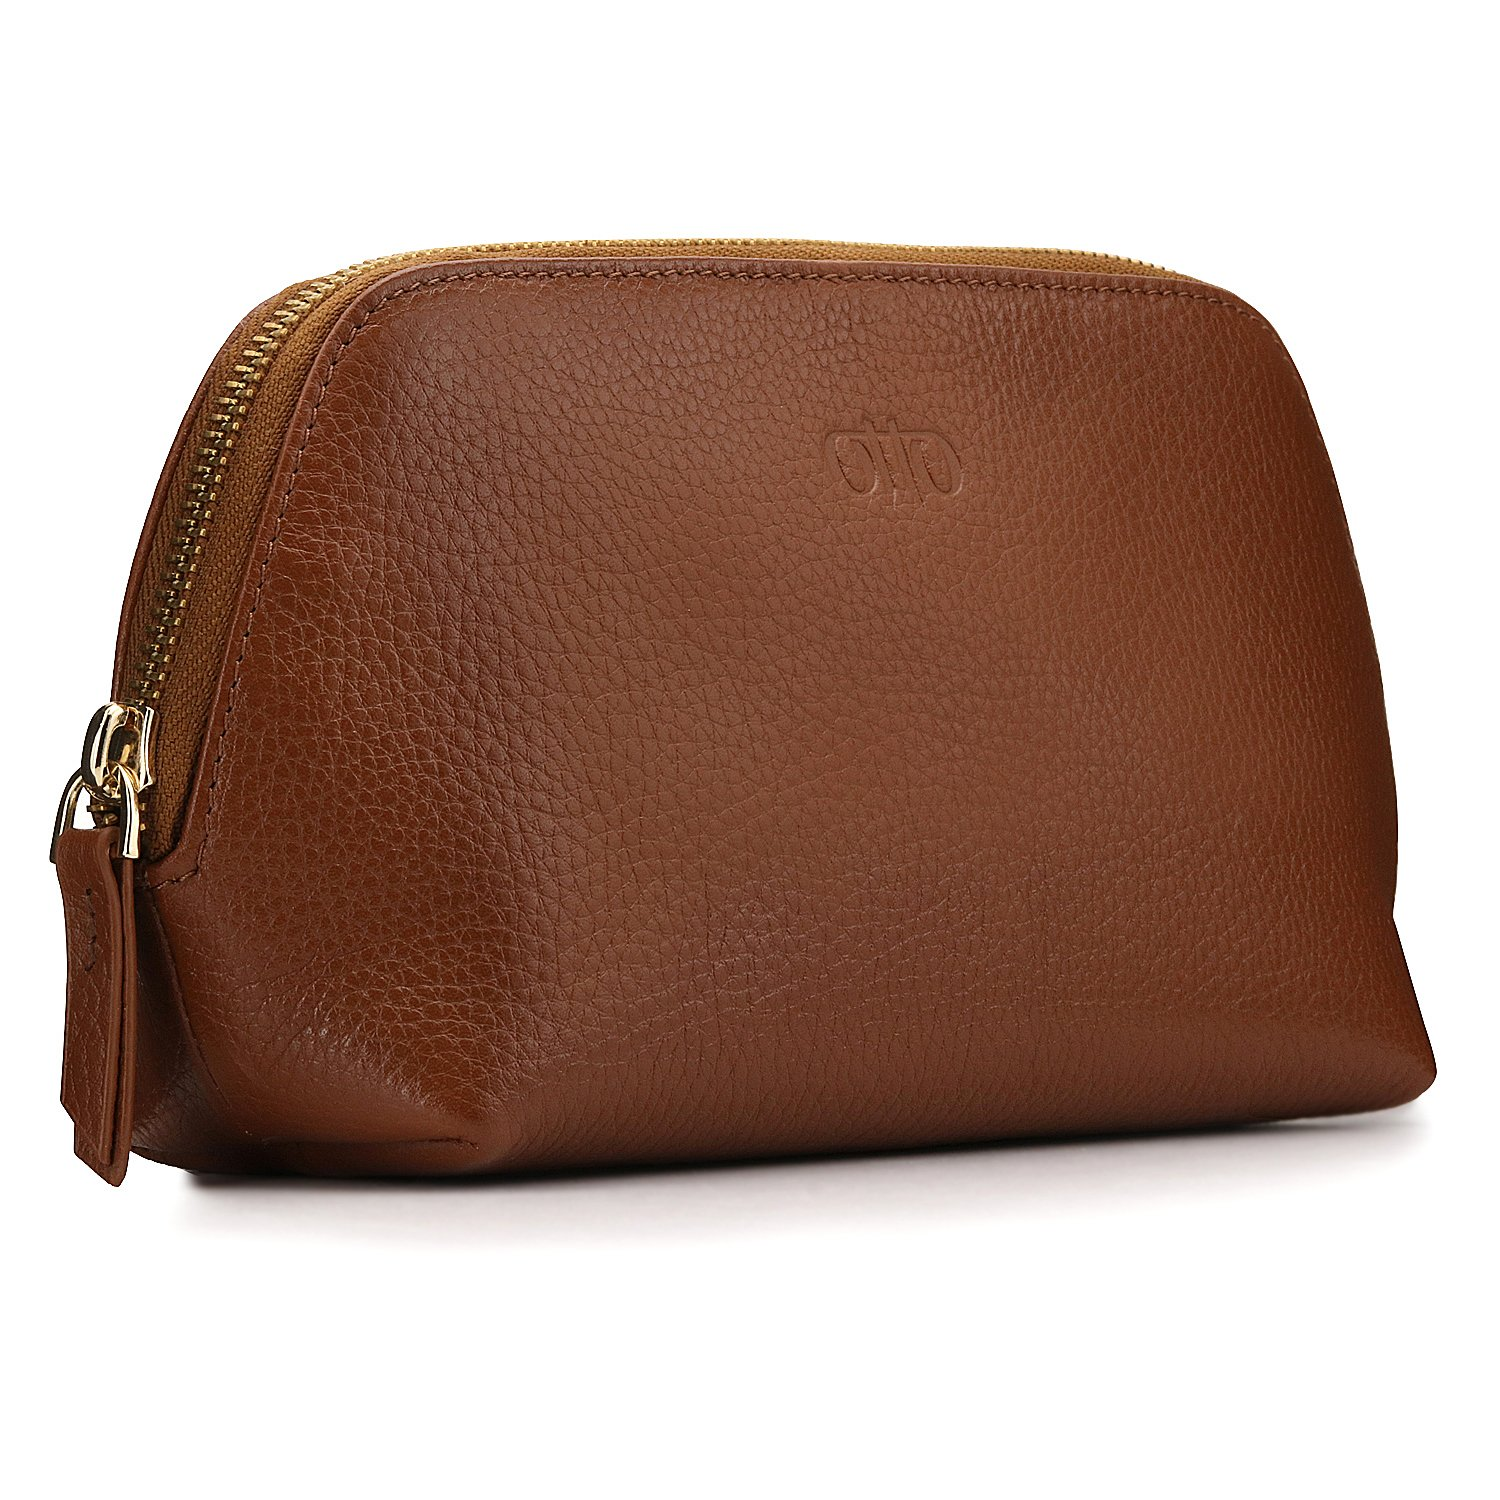 OTTO Genuine Leather Makeup Bag Cosmetic Pouch Travel Organizer Toiletry Clutch (Light Brown) OTTO Leather OTTO193